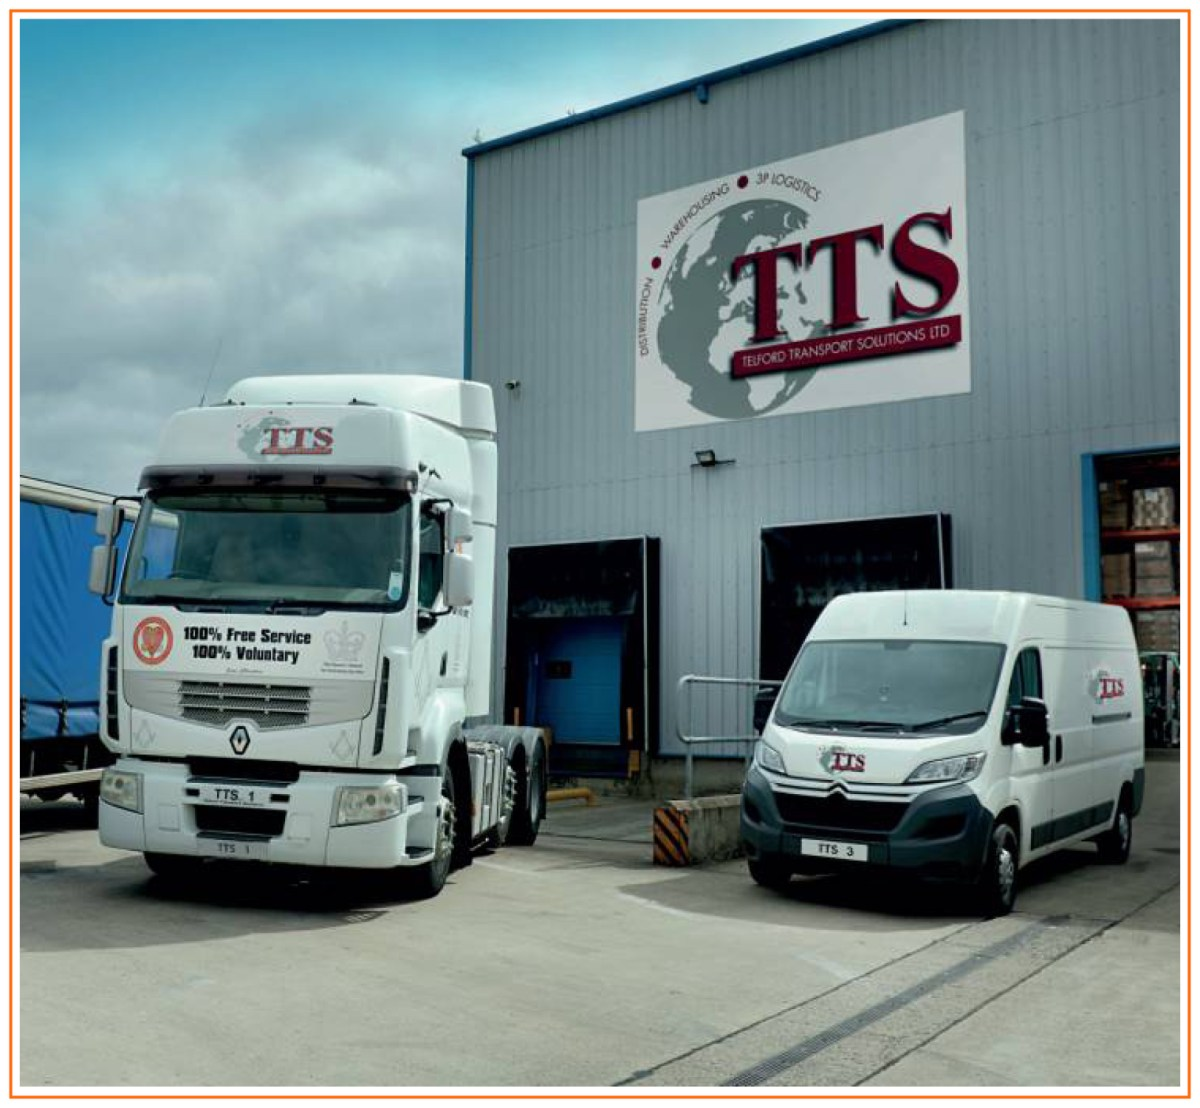 https://i2.wp.com/haultech.co.uk/wp-content/uploads/2020/09/Telford-Transport-Solutions-NSI.jpg?fit=1200%2C1108&ssl=1